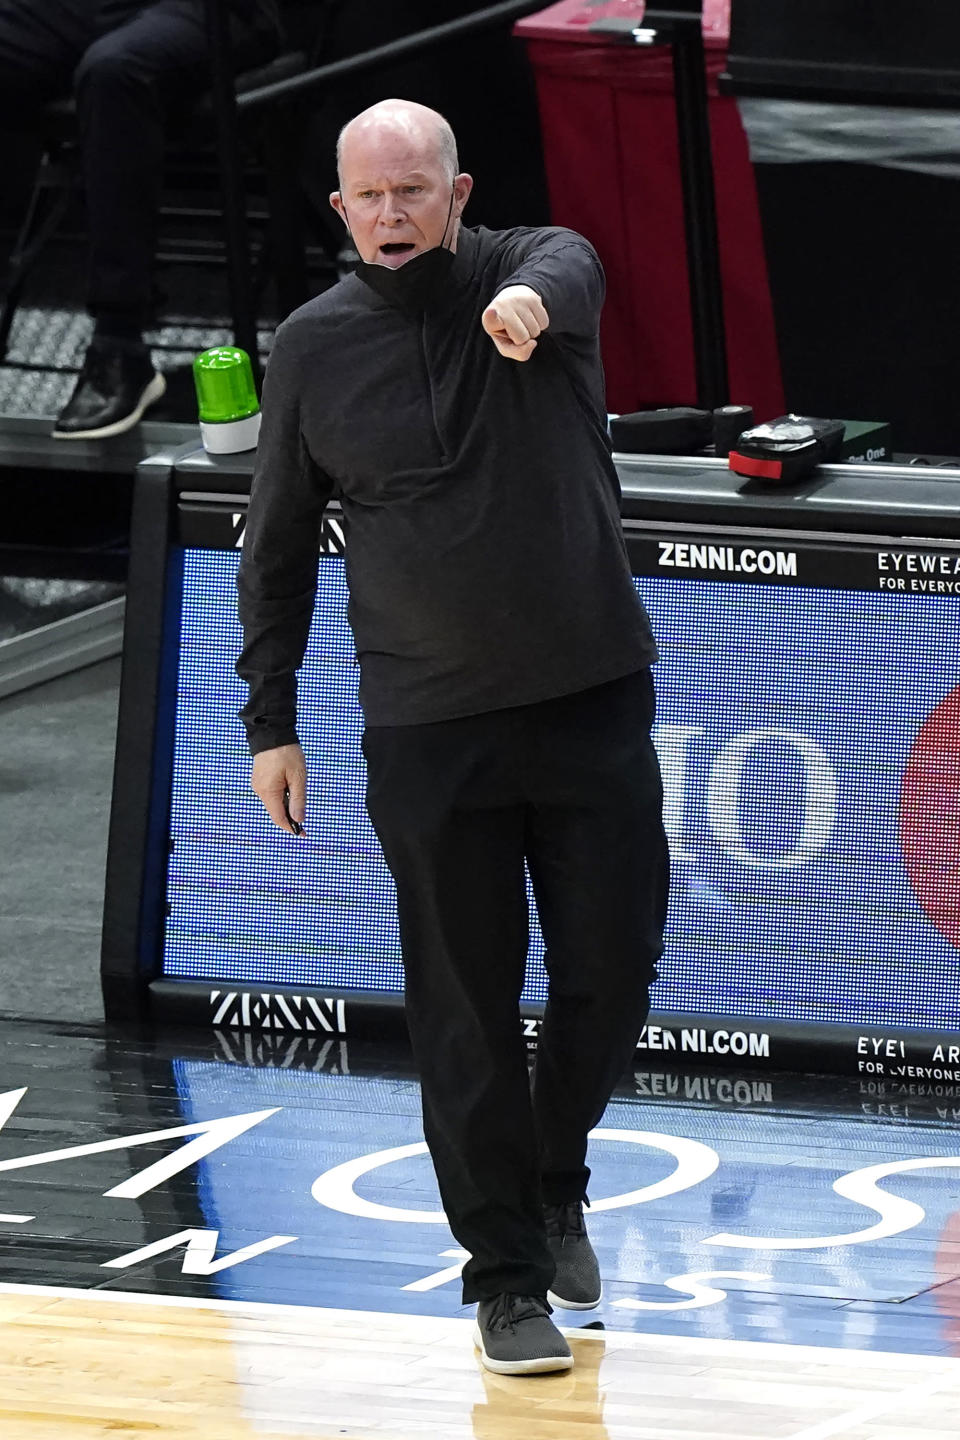 Orlando Magic coach Steve Clifford points as he talks to the team during the first half of an NBA basketball game against the Chicago Bulls in Chicago, Wednesday, April 14, 2021. (AP Photo/Nam Y. Huh)